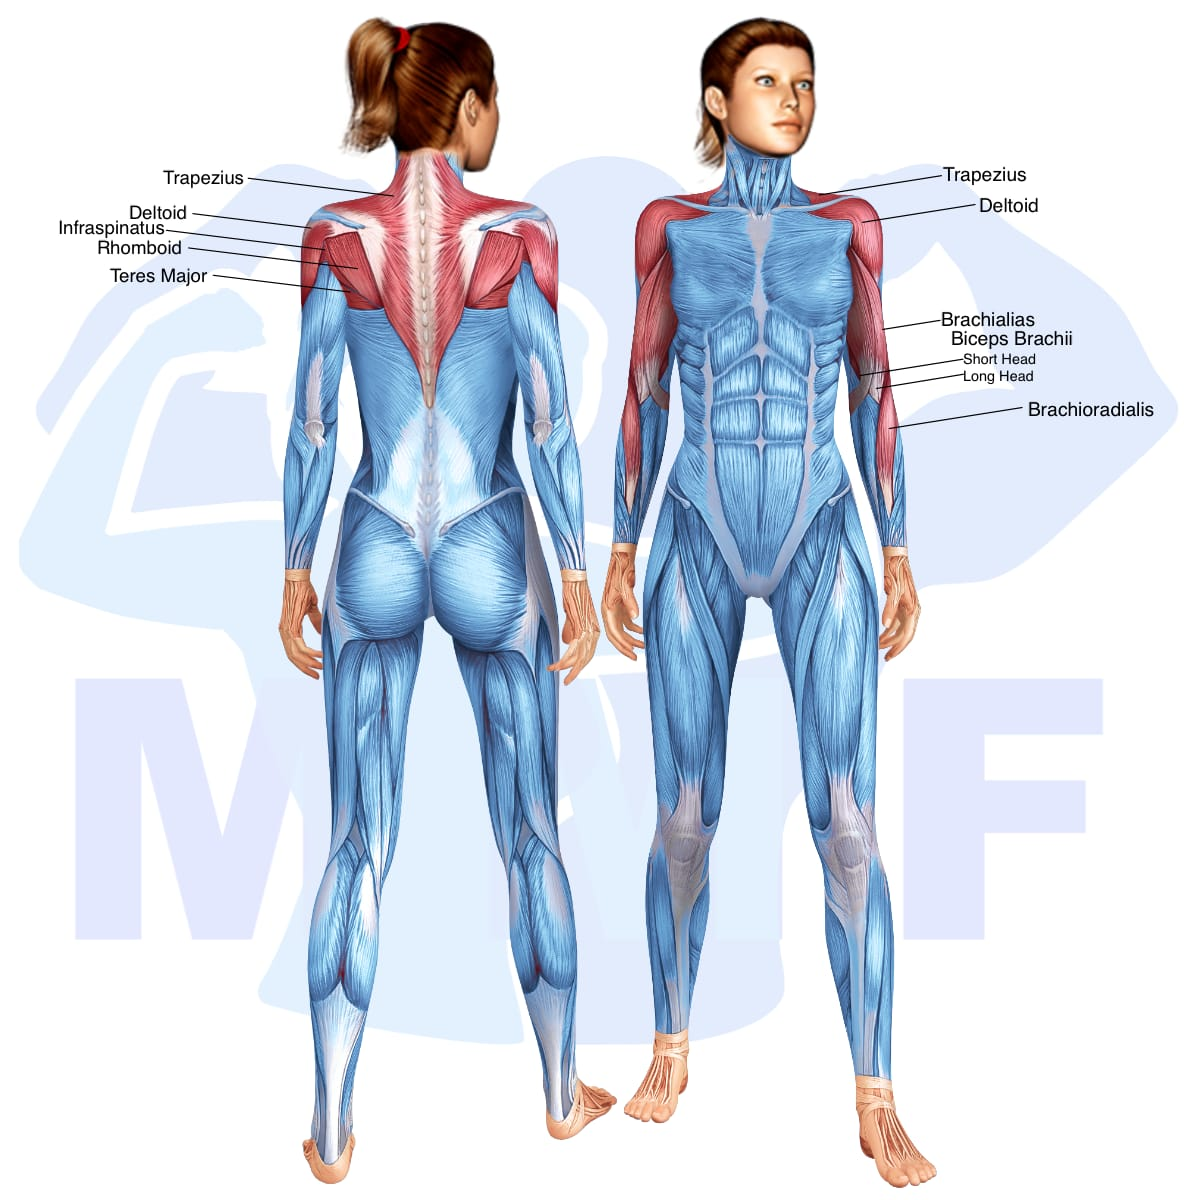 Skeletal muscle systems for a muscular woman, with muscles highlighted in red that are use during resistance band face pulls.